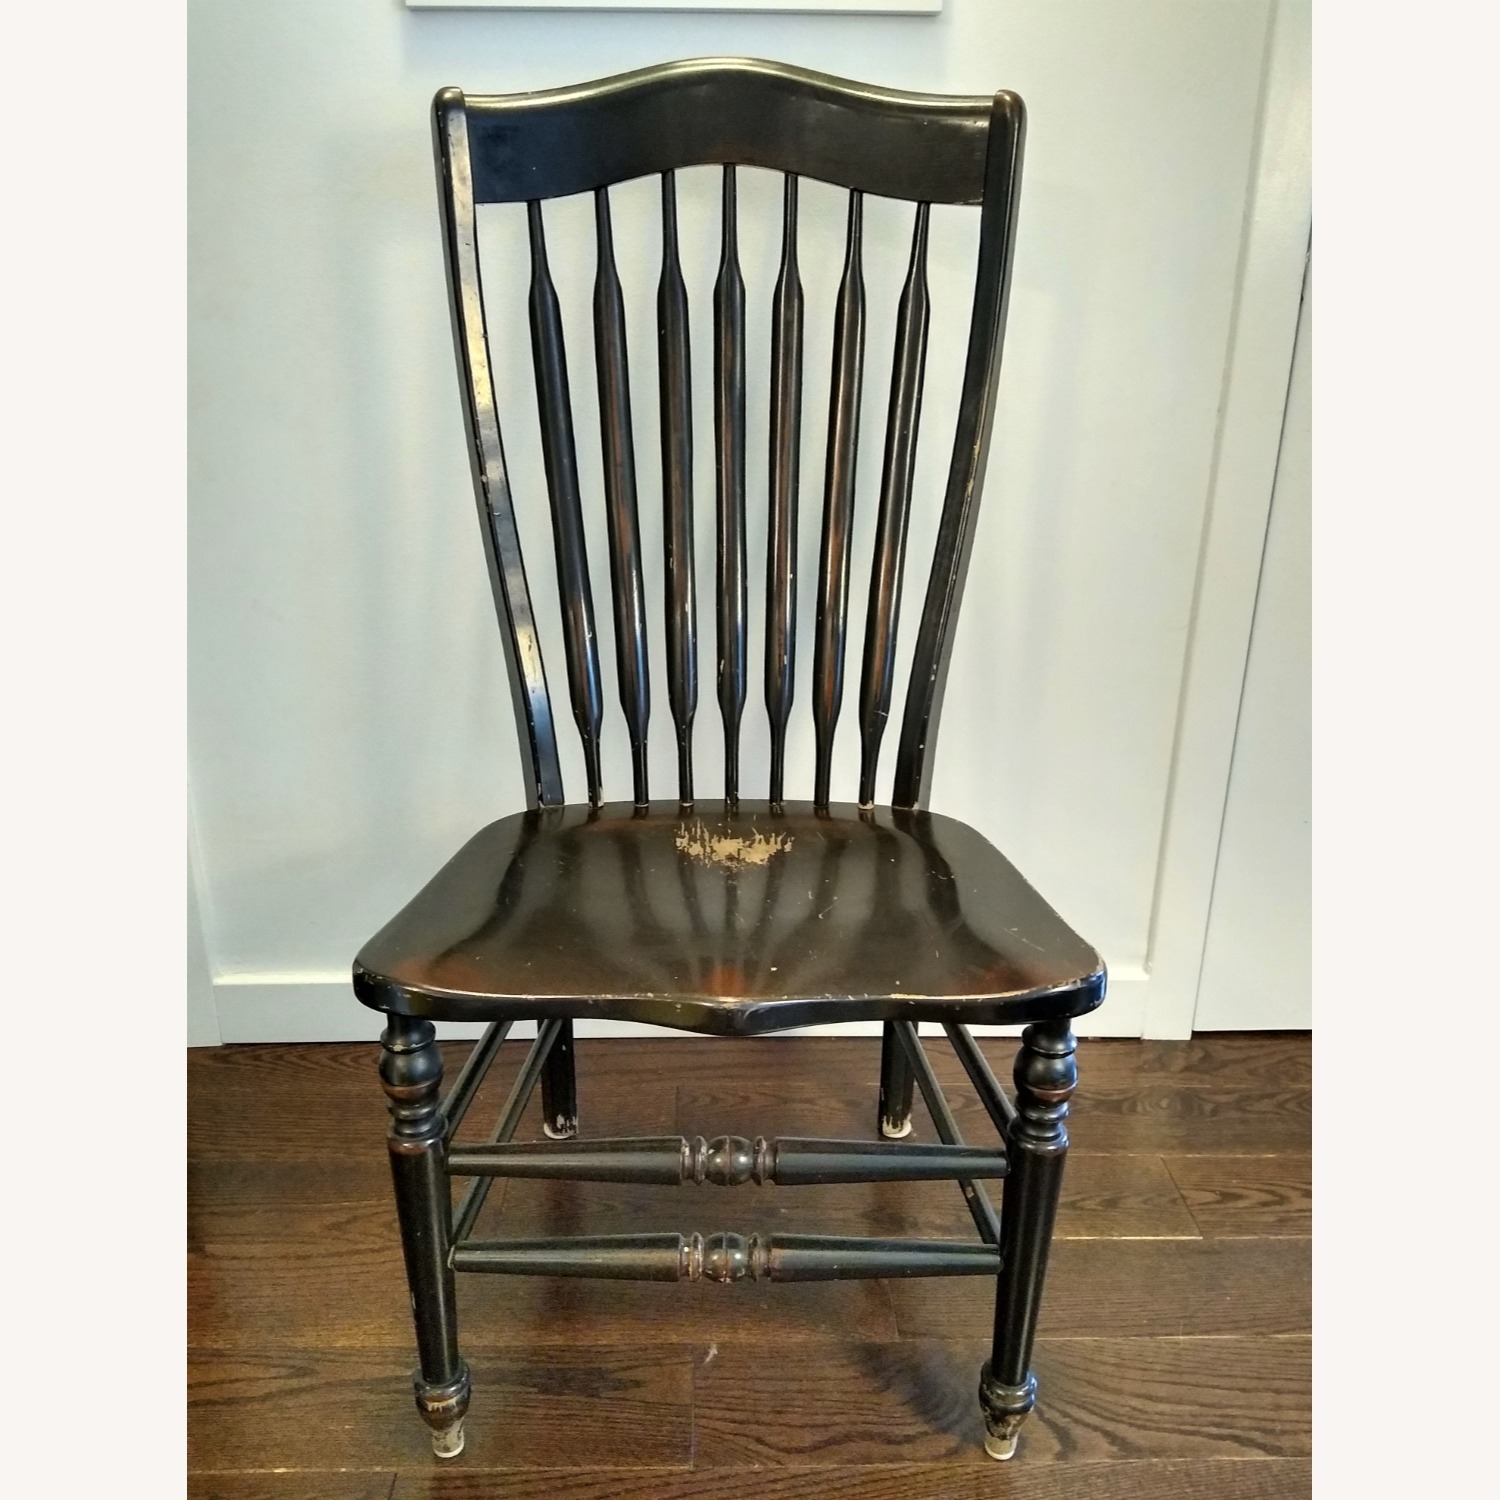 Five Vintage Nichols & Stone Windsor Chairs - image-4